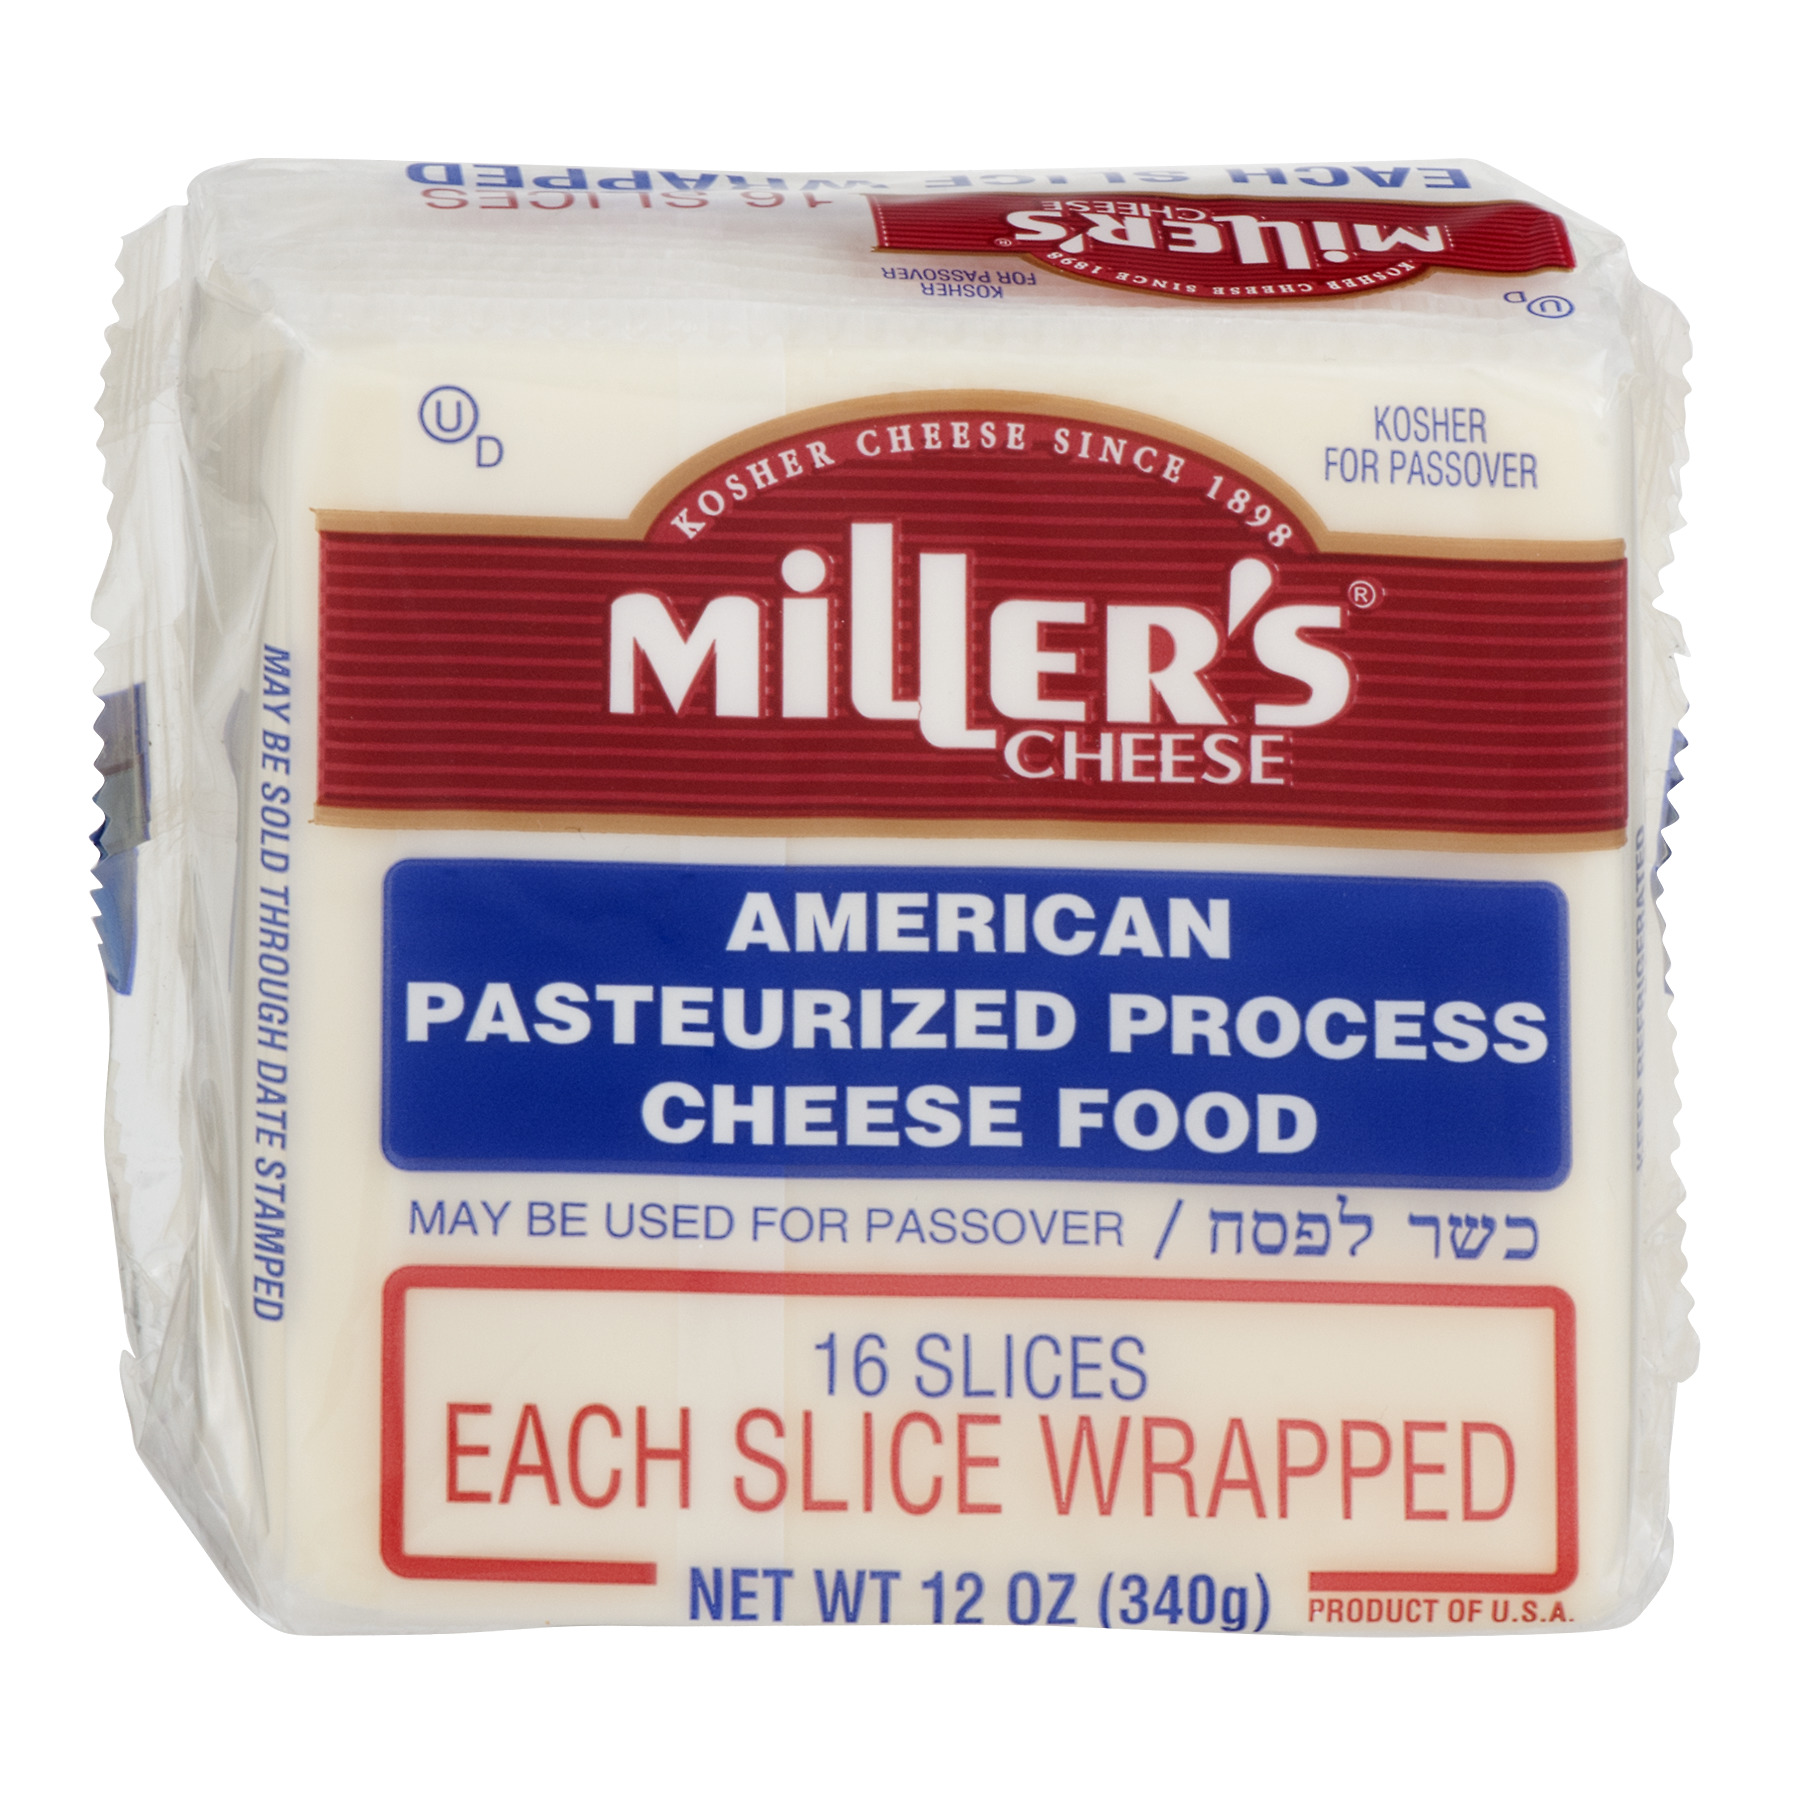 Miller's Cheese American Pasteurized Process Cheese Food Sliced, 12 Oz., 16 Count